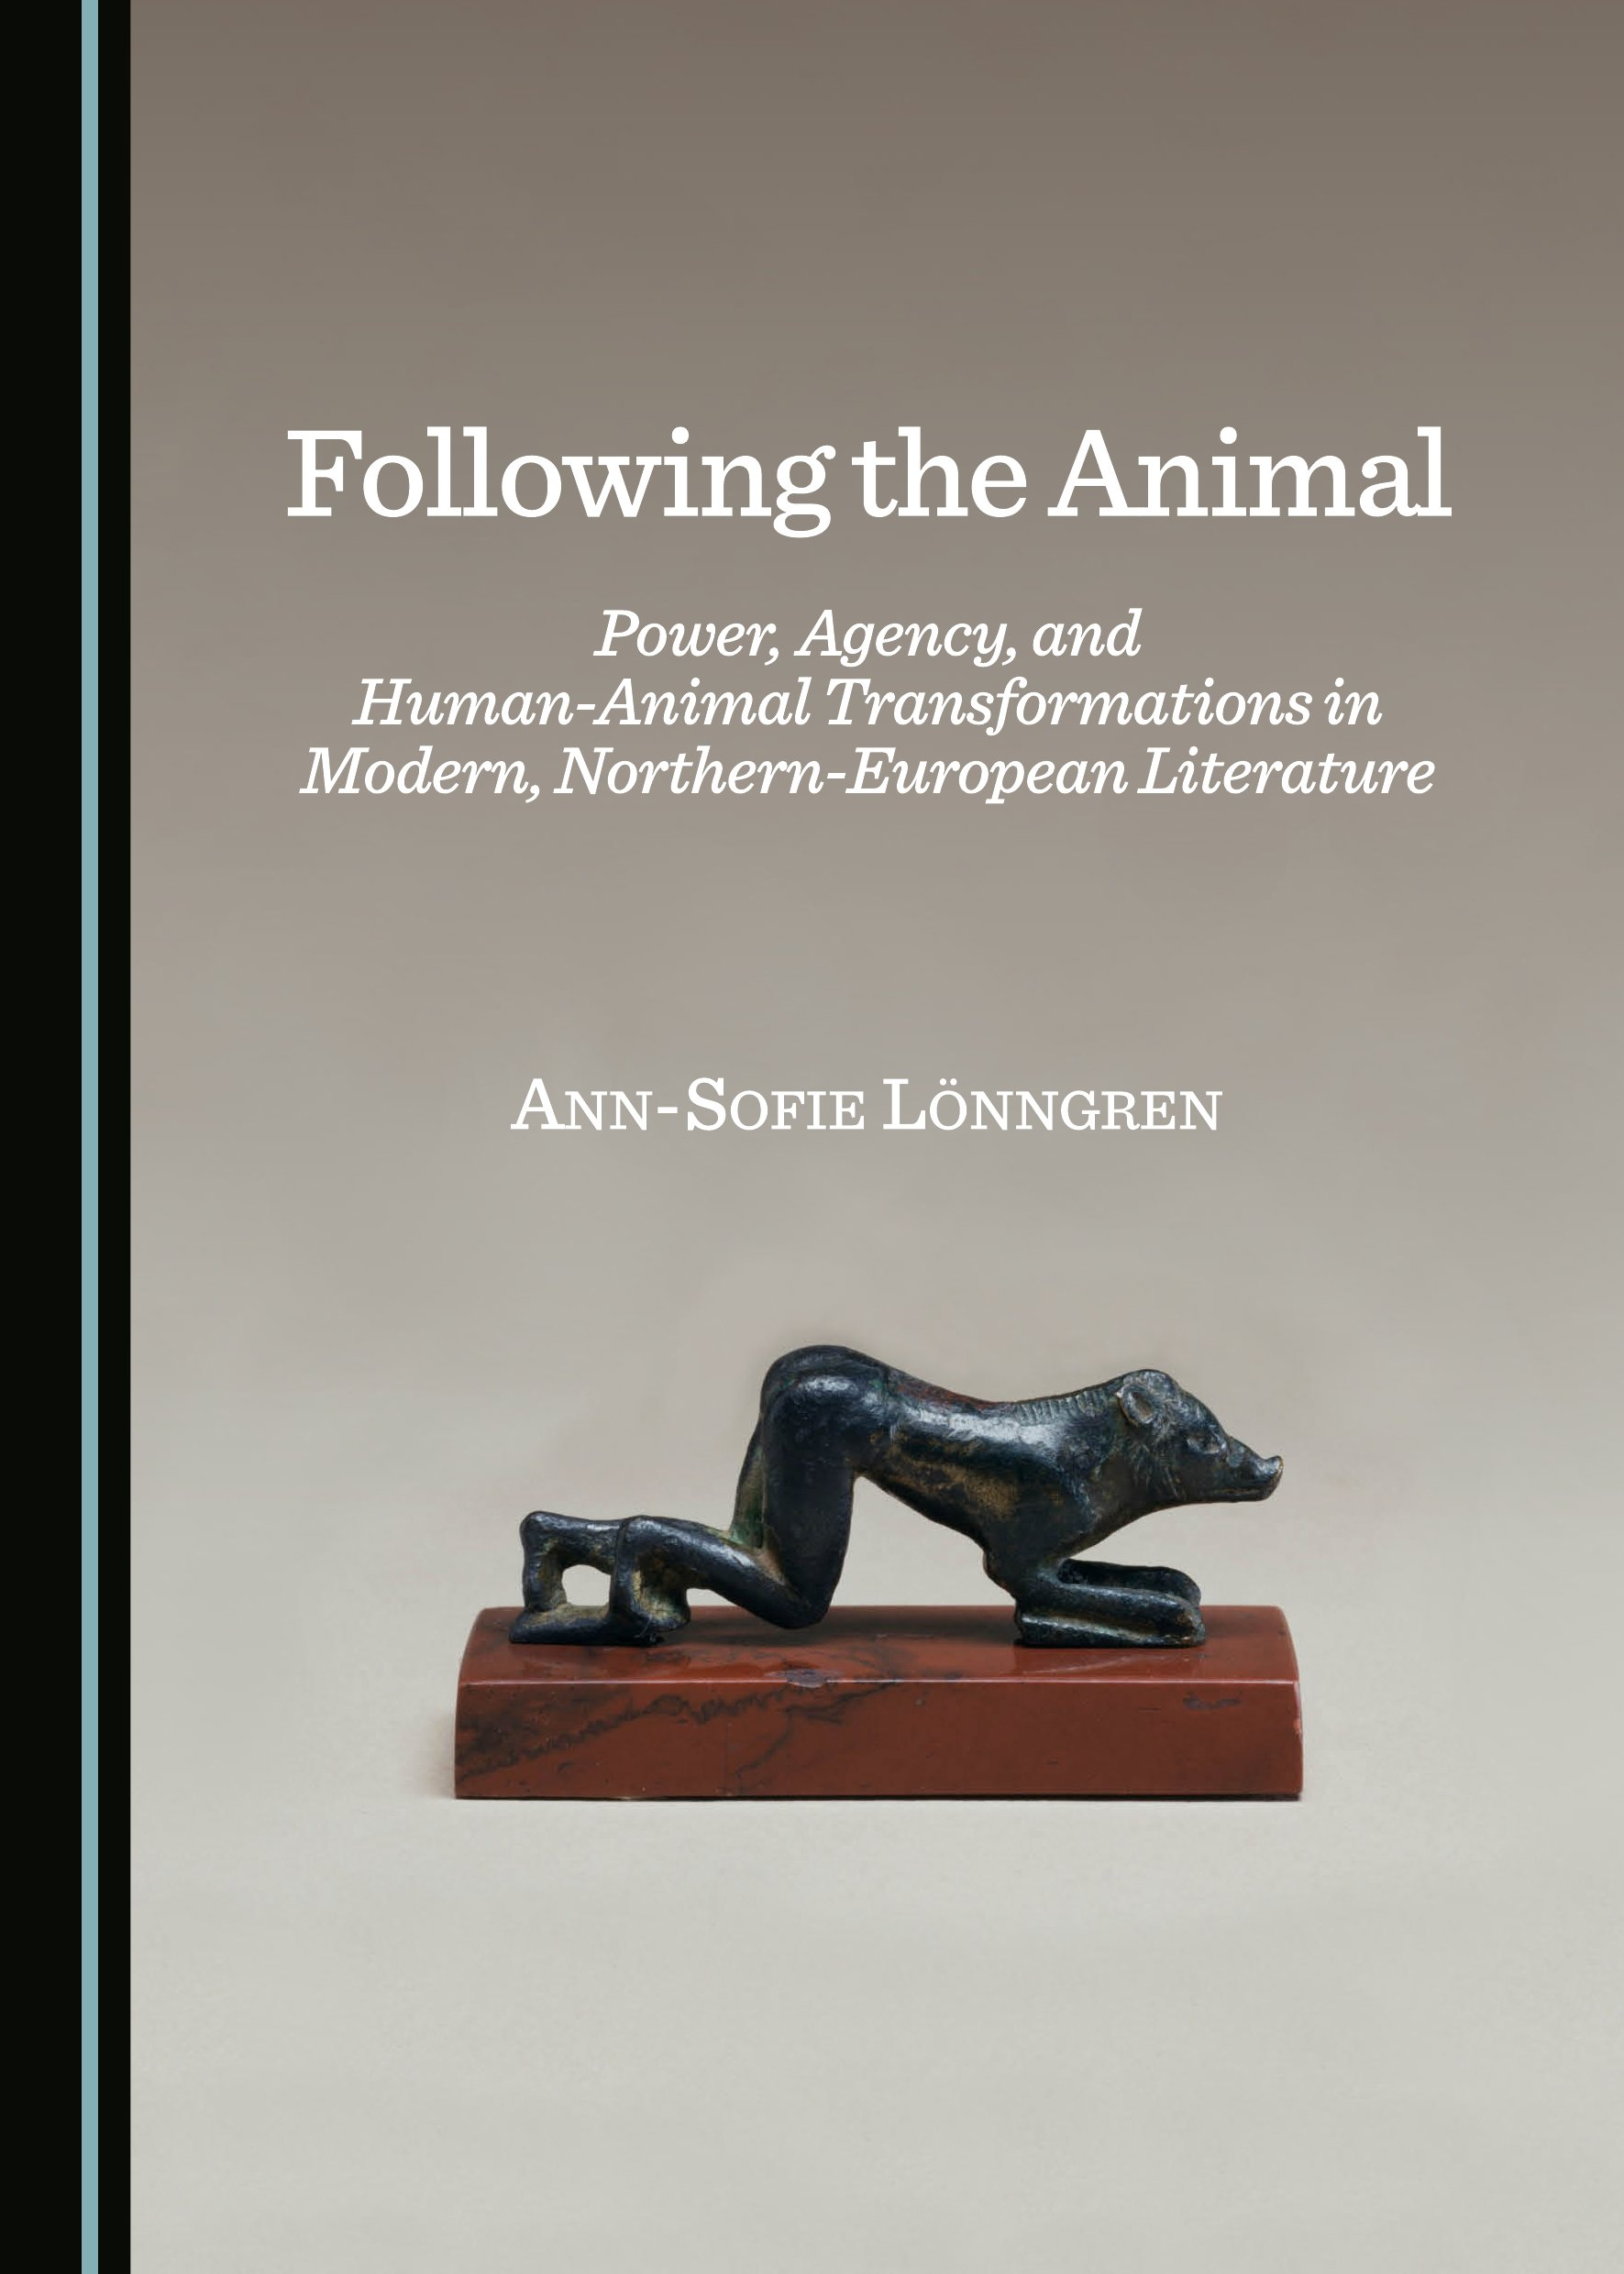 Following the Animal: Power, Agency, and Human-Animal Transformations in Modern, Northern-European Literature